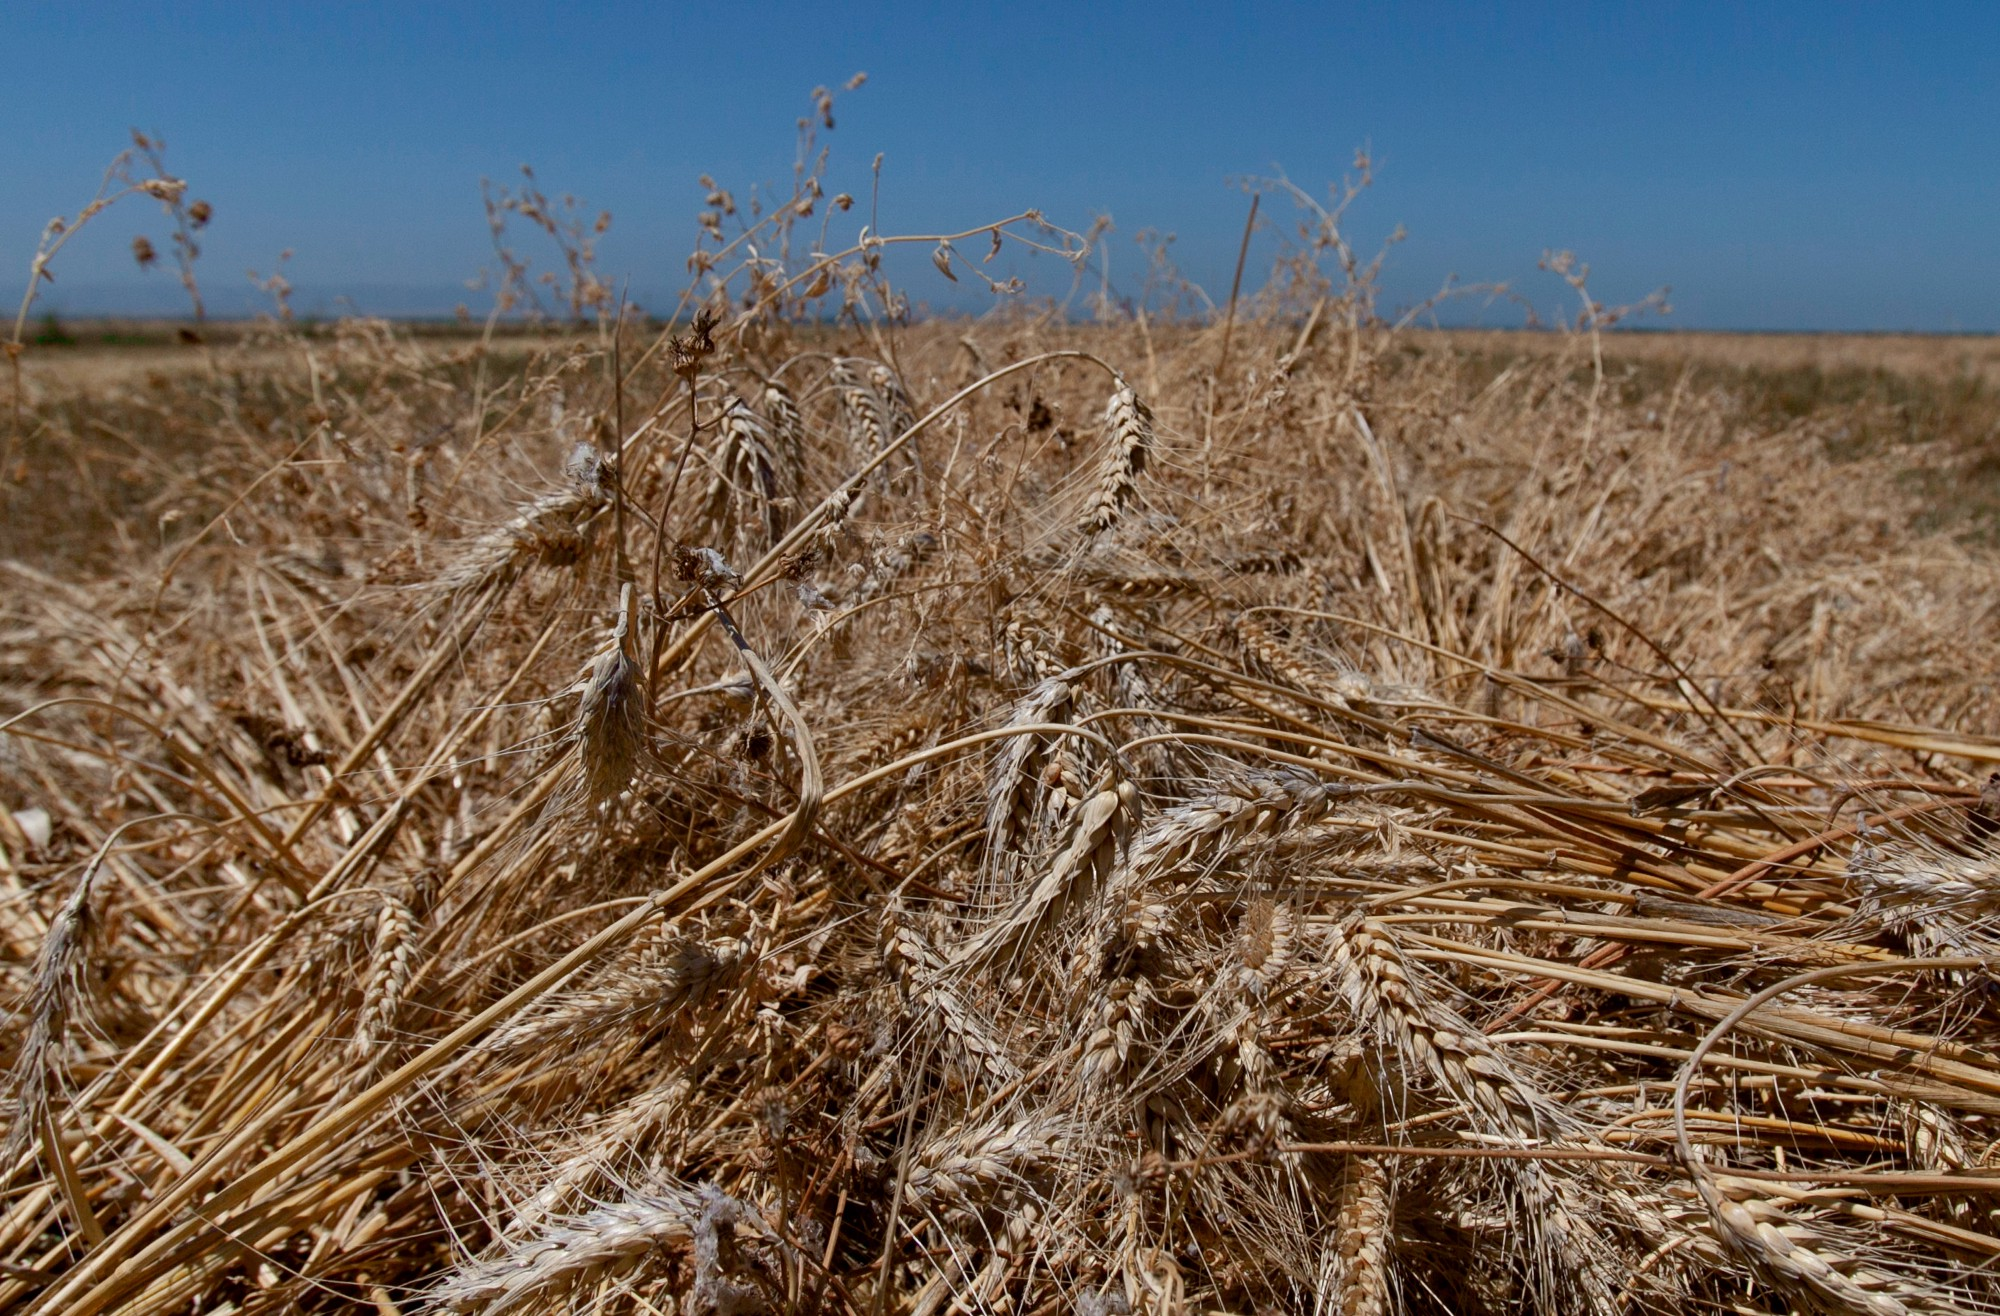 A field of wheat under a blue, cloudless sky.